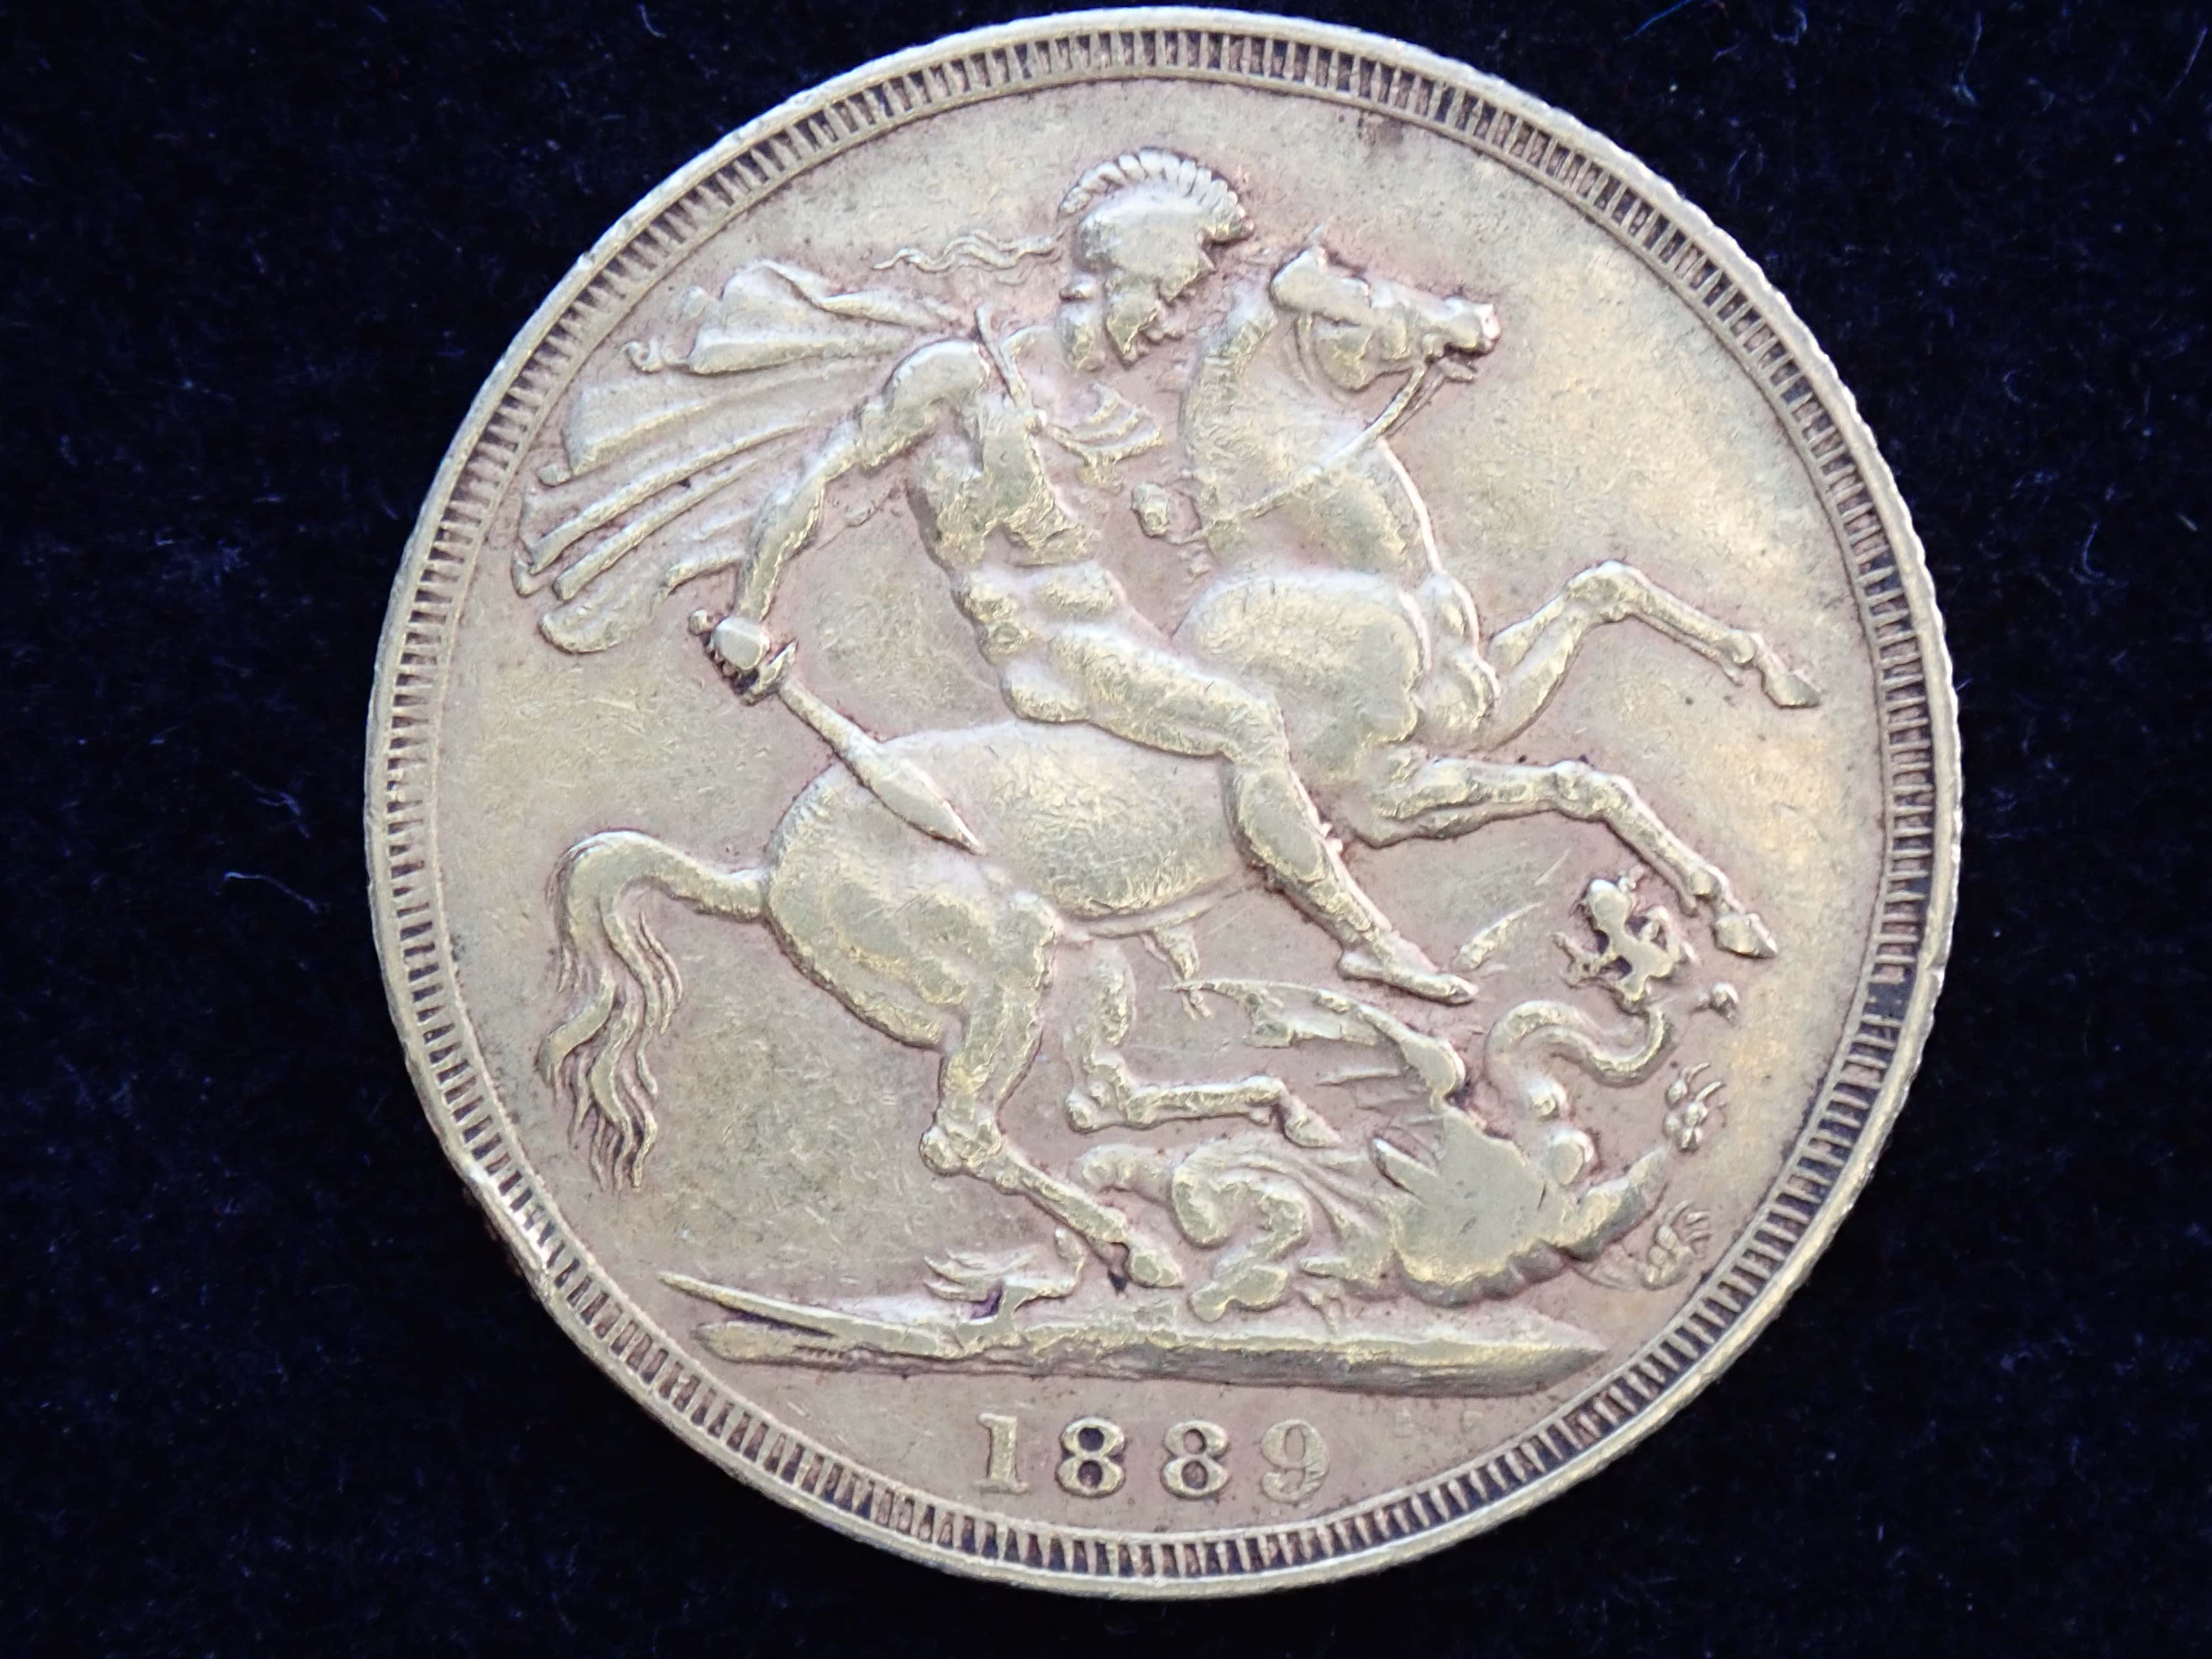 AA000794 - 1889 Gold Coin Sovereign - Queen Victoria Jubilee Head - London Minted #300B